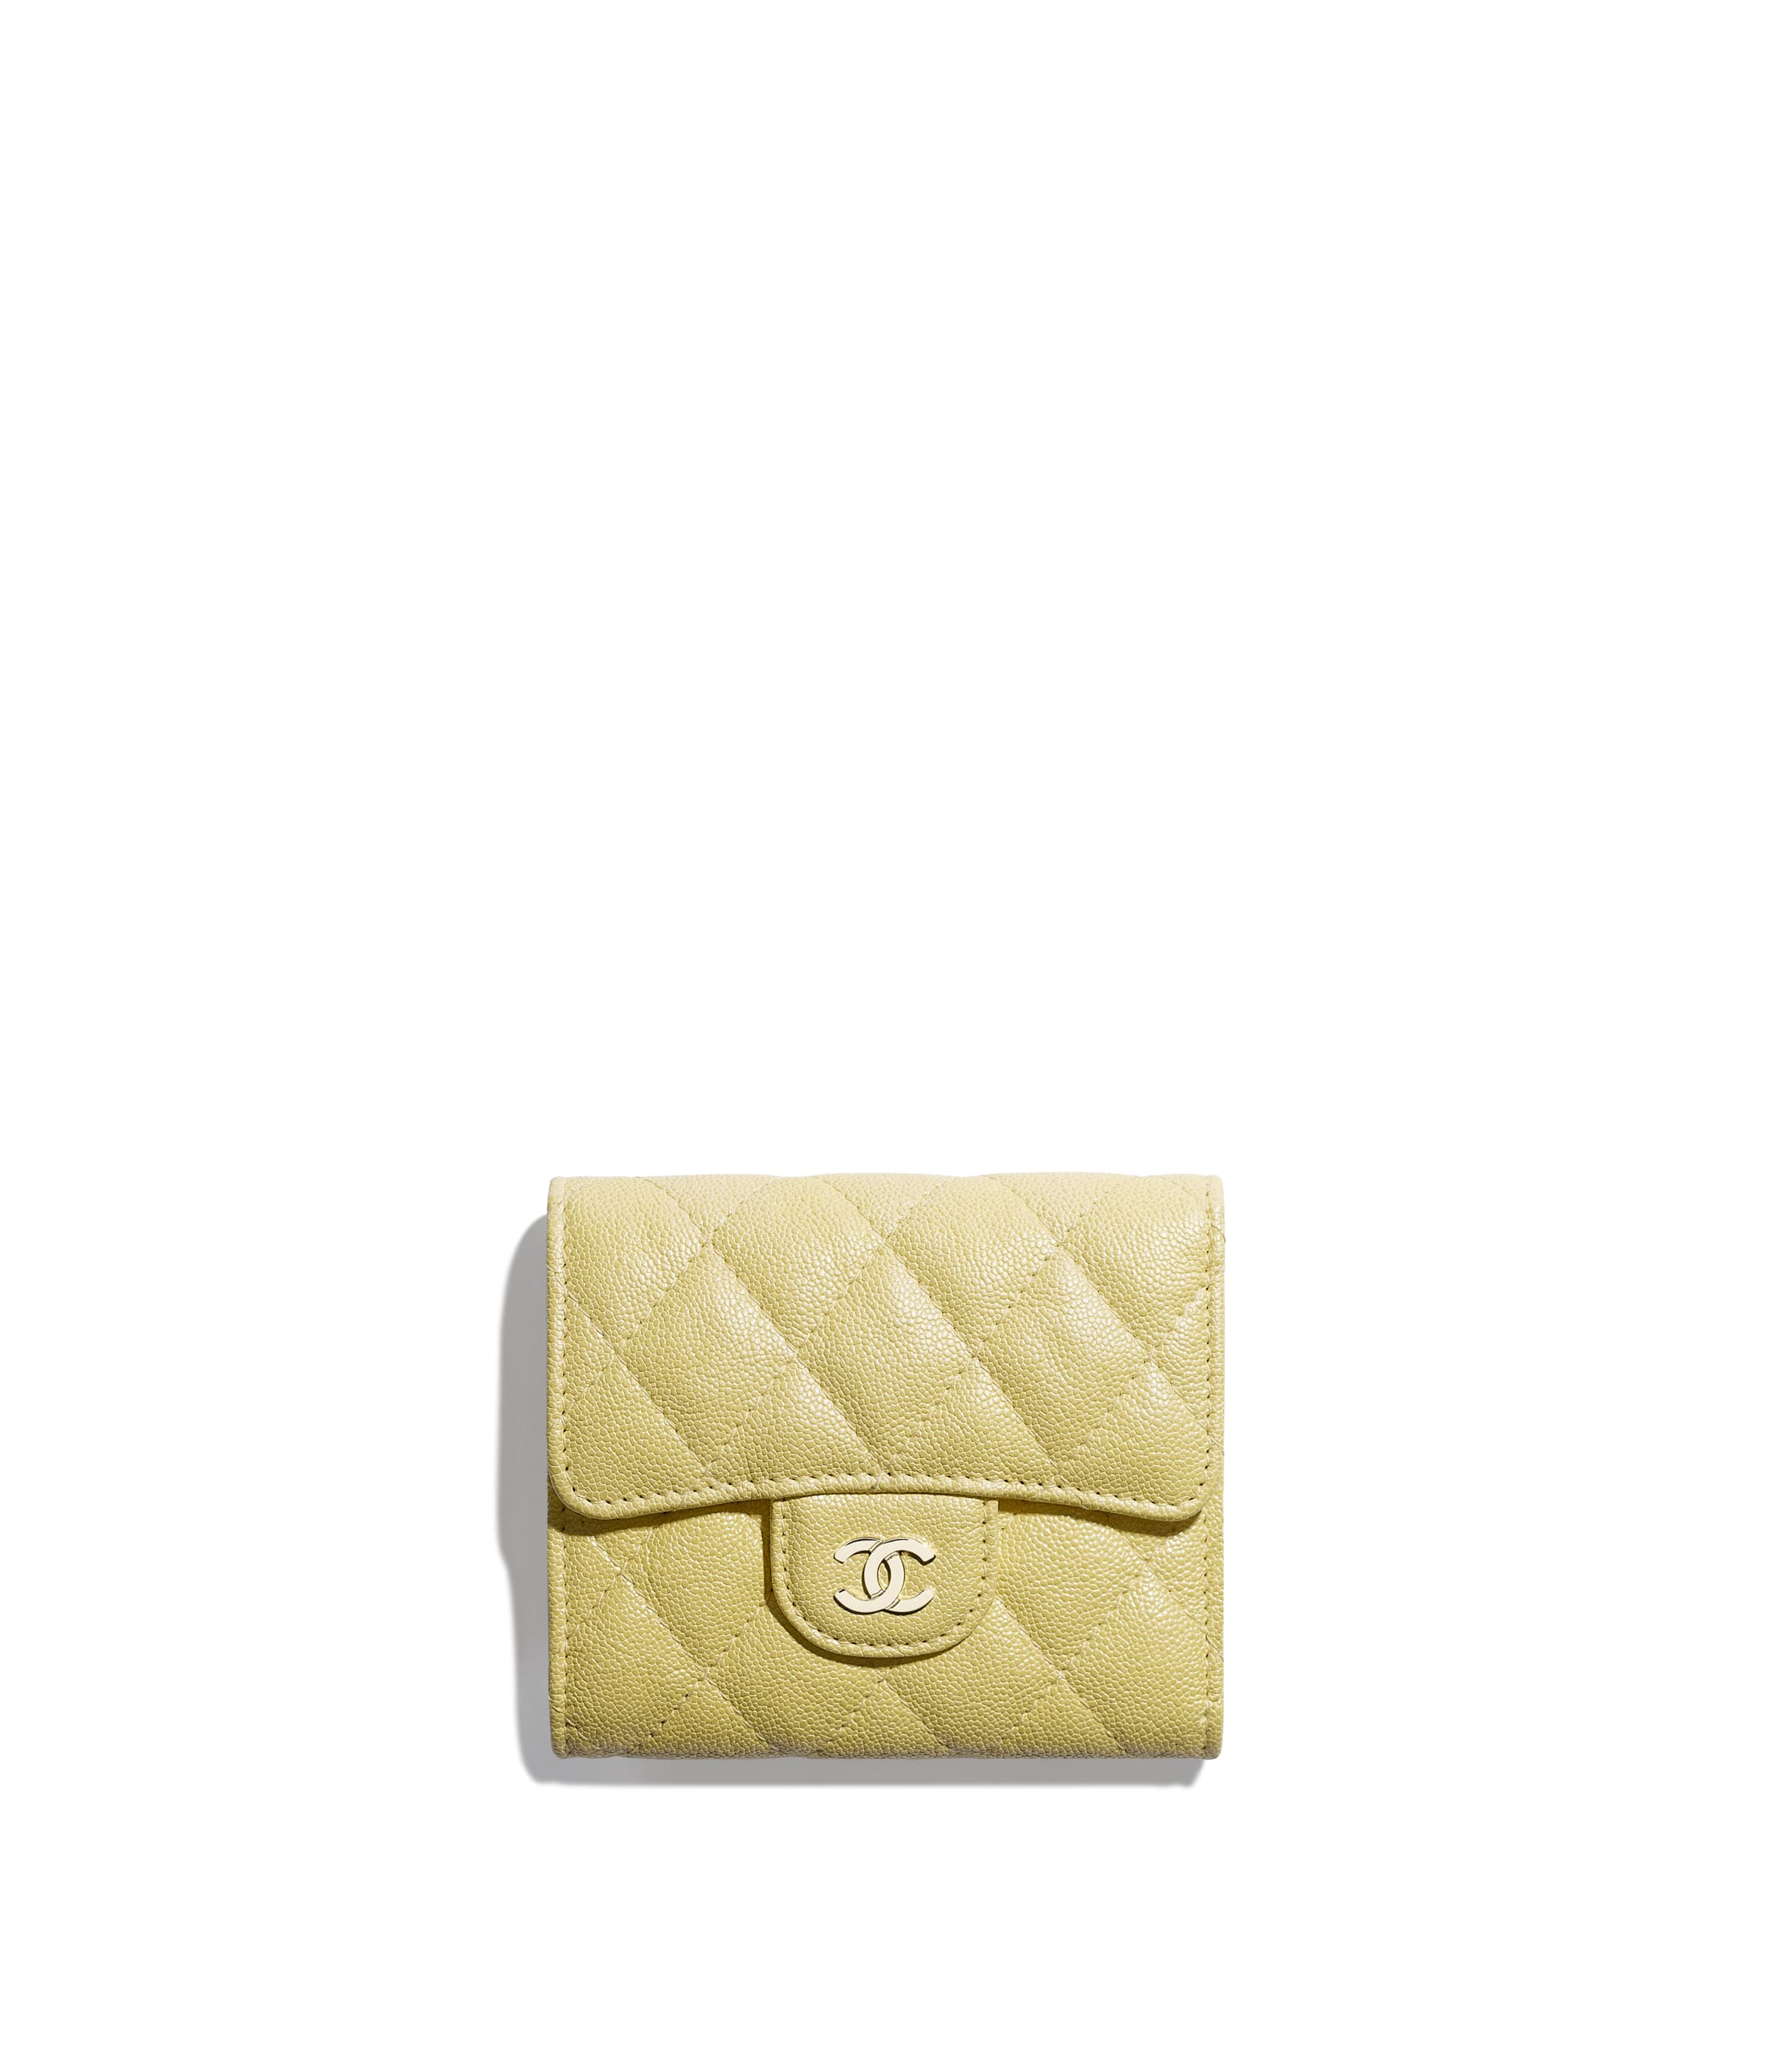 8256d2abc3a8cb Small Wallets - Small Leather Goods - CHANEL